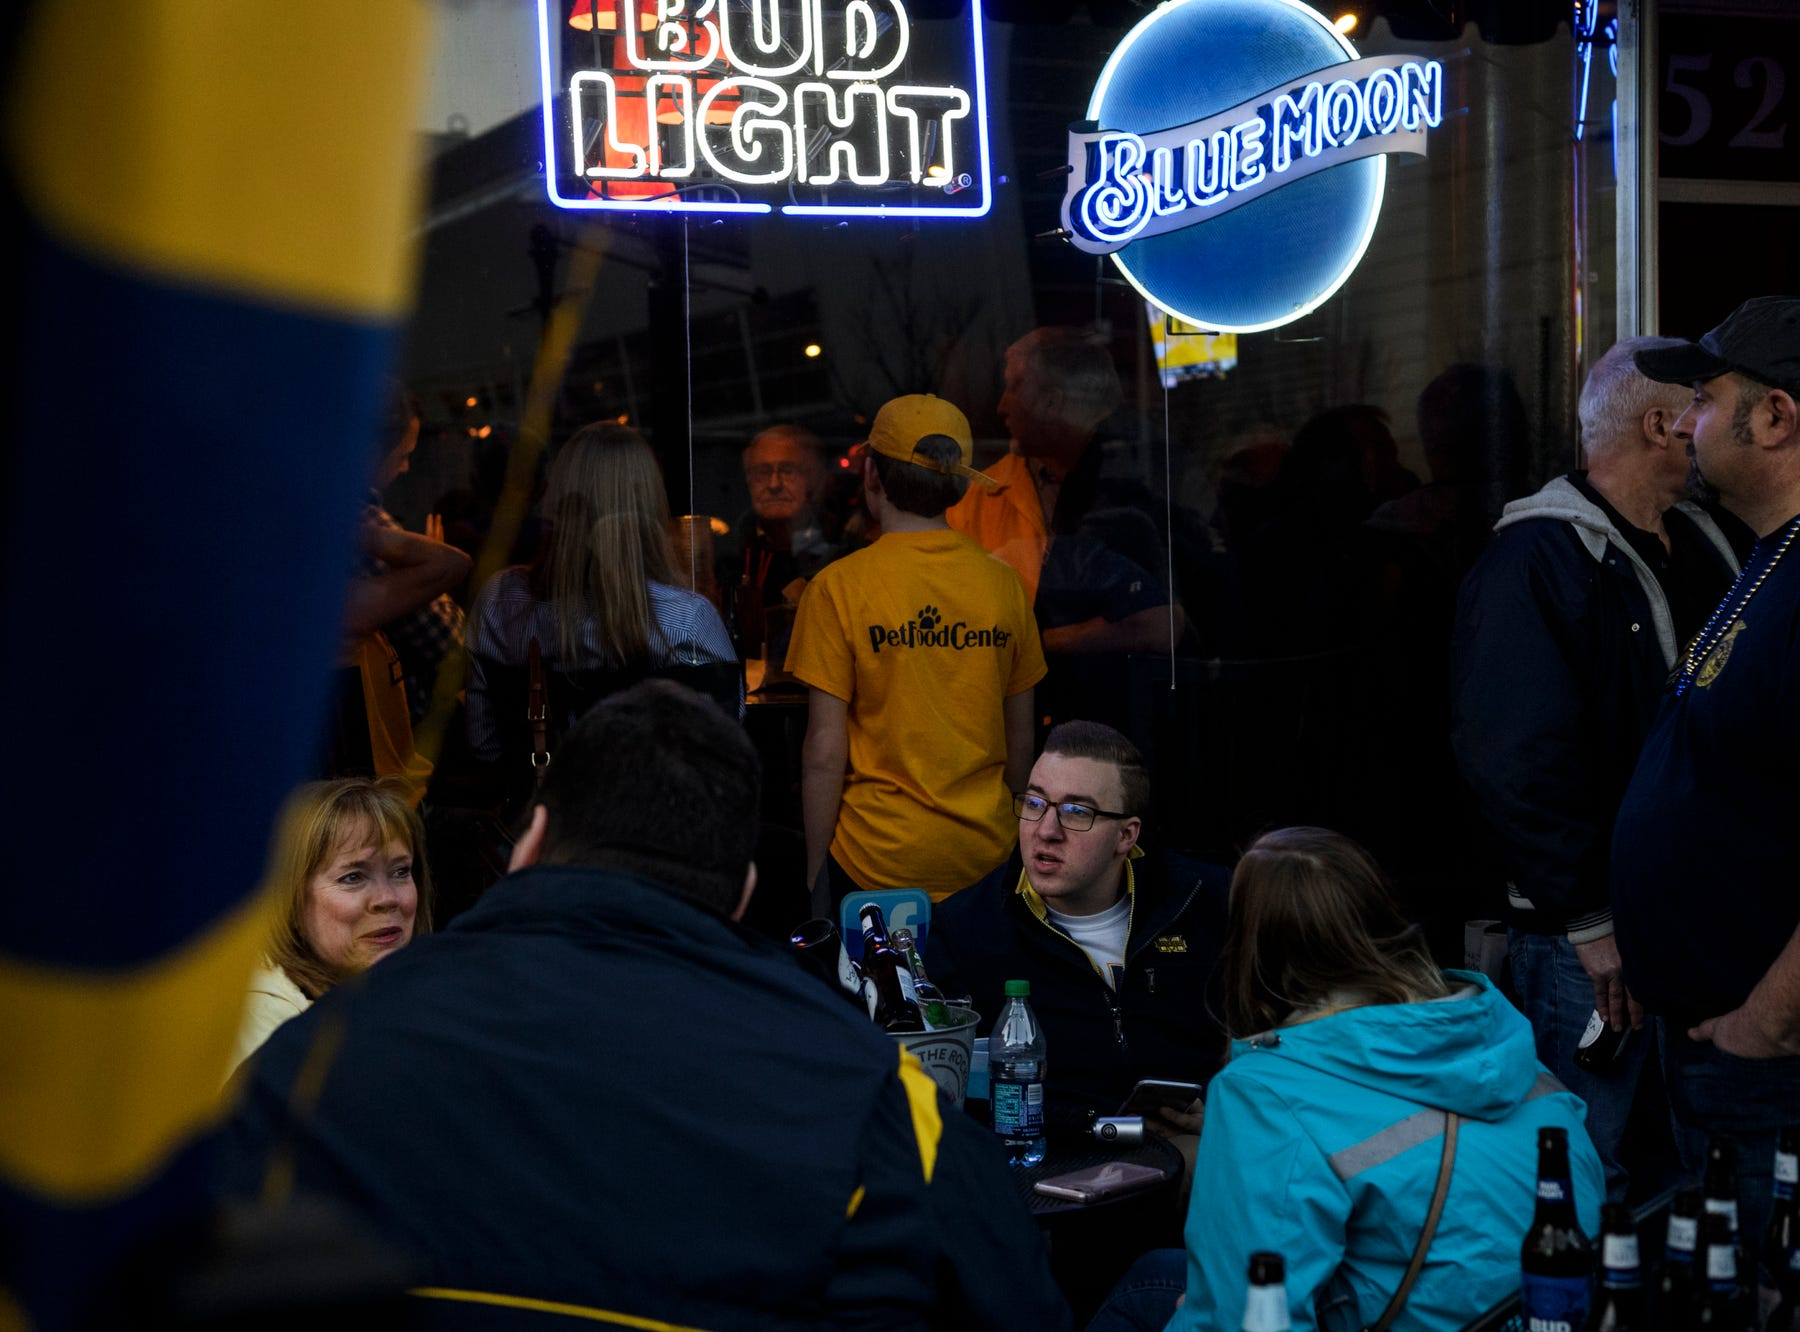 Murray State University Racers fans fill Backstage Bar & Grill to pre-game before the Murray State University Racers take on the Belmont University Bruins in the Ohio Valley Conference men's basketball championship at Ford Center in Evansville, Ind., Saturday, March 9, 2019.